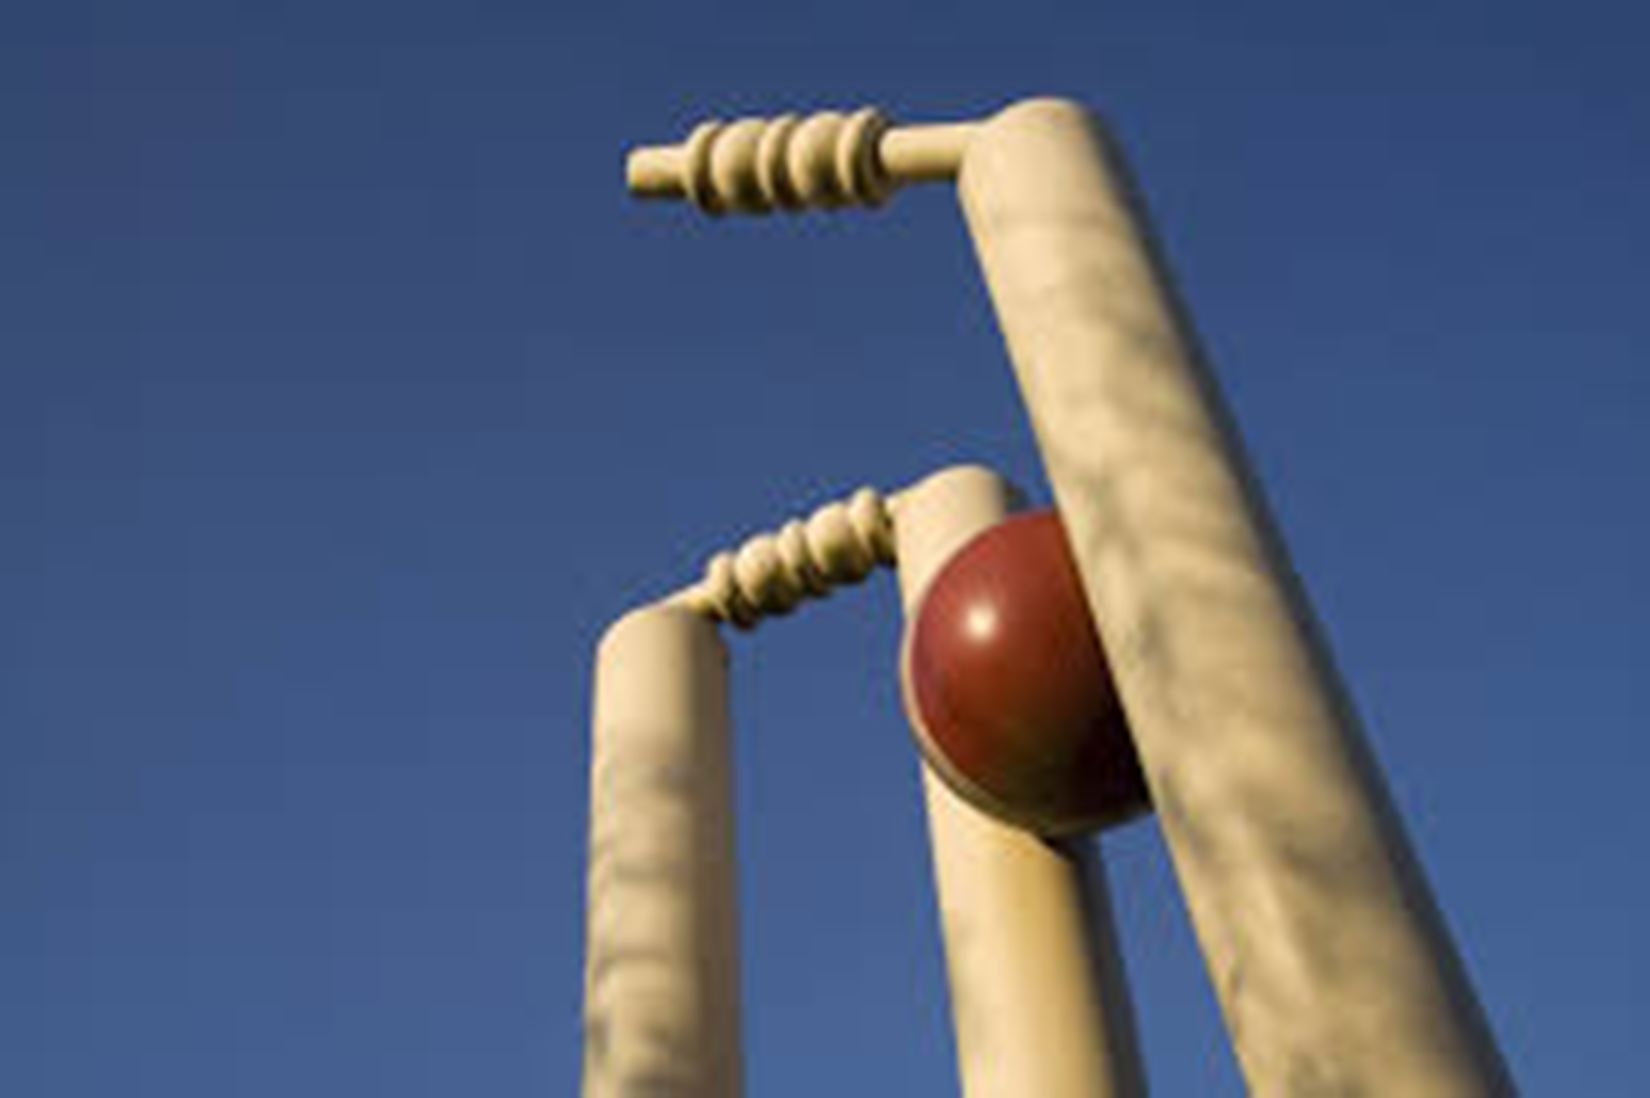 ON TOP: Ammanford claimed a seven-wicket victory over Aberdare in SWCA Division One.